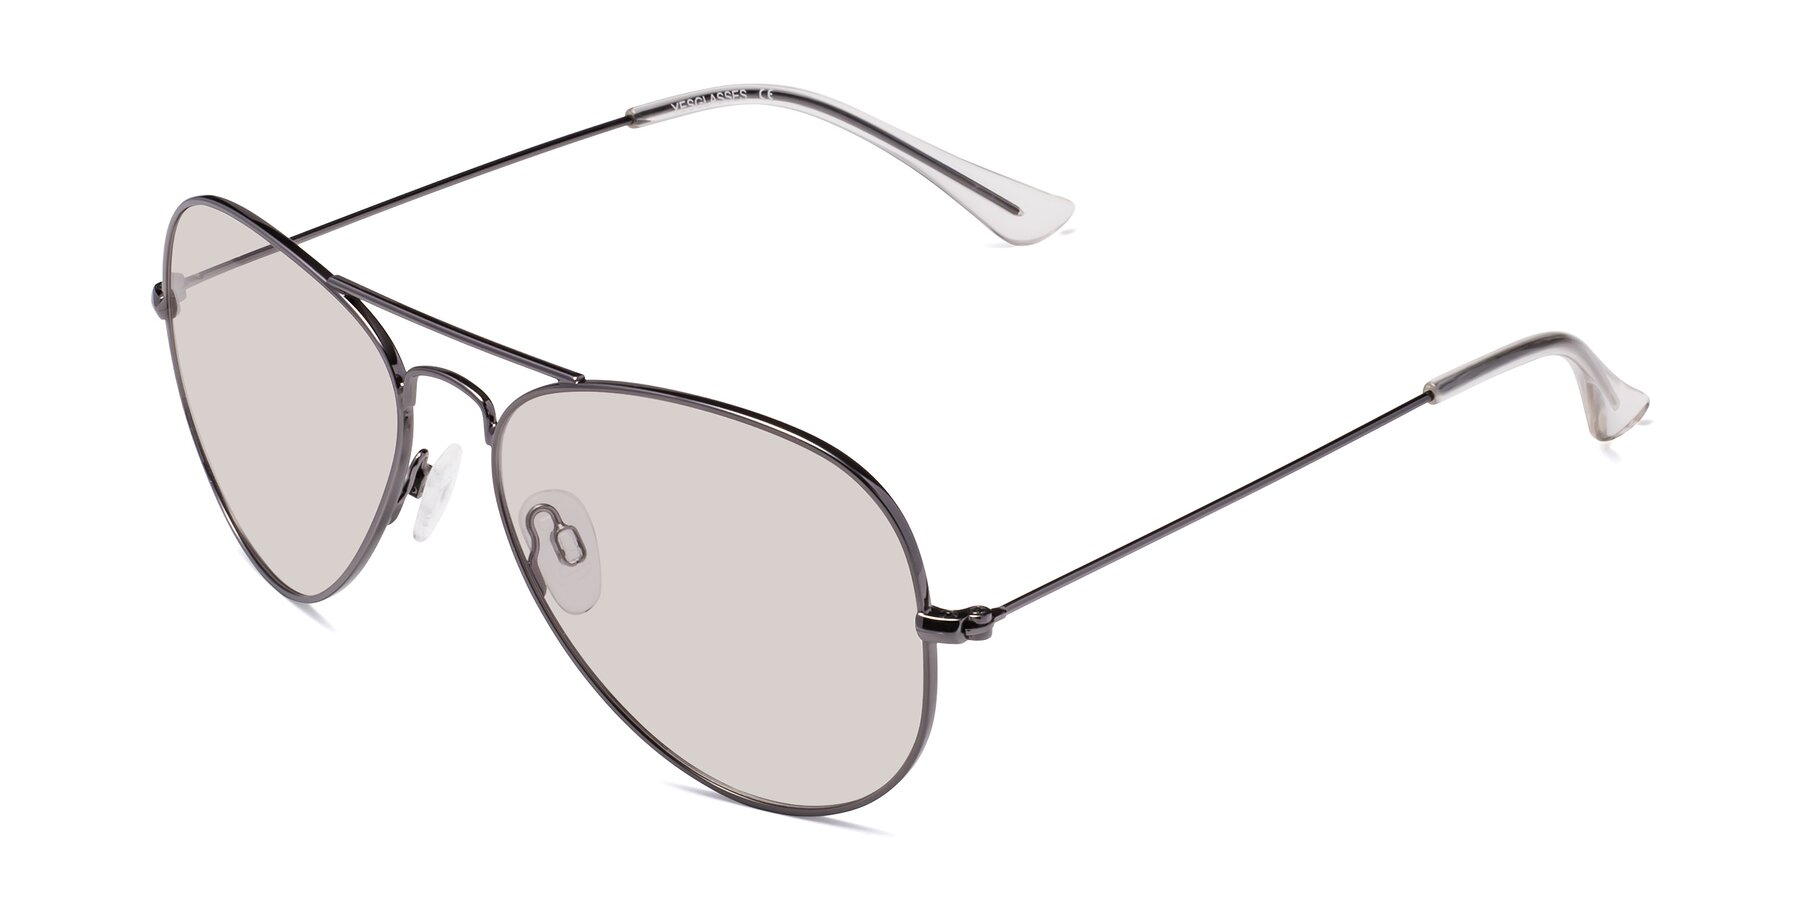 Angle of Yesterday in Gunmetal with Light Brown Tinted Lenses